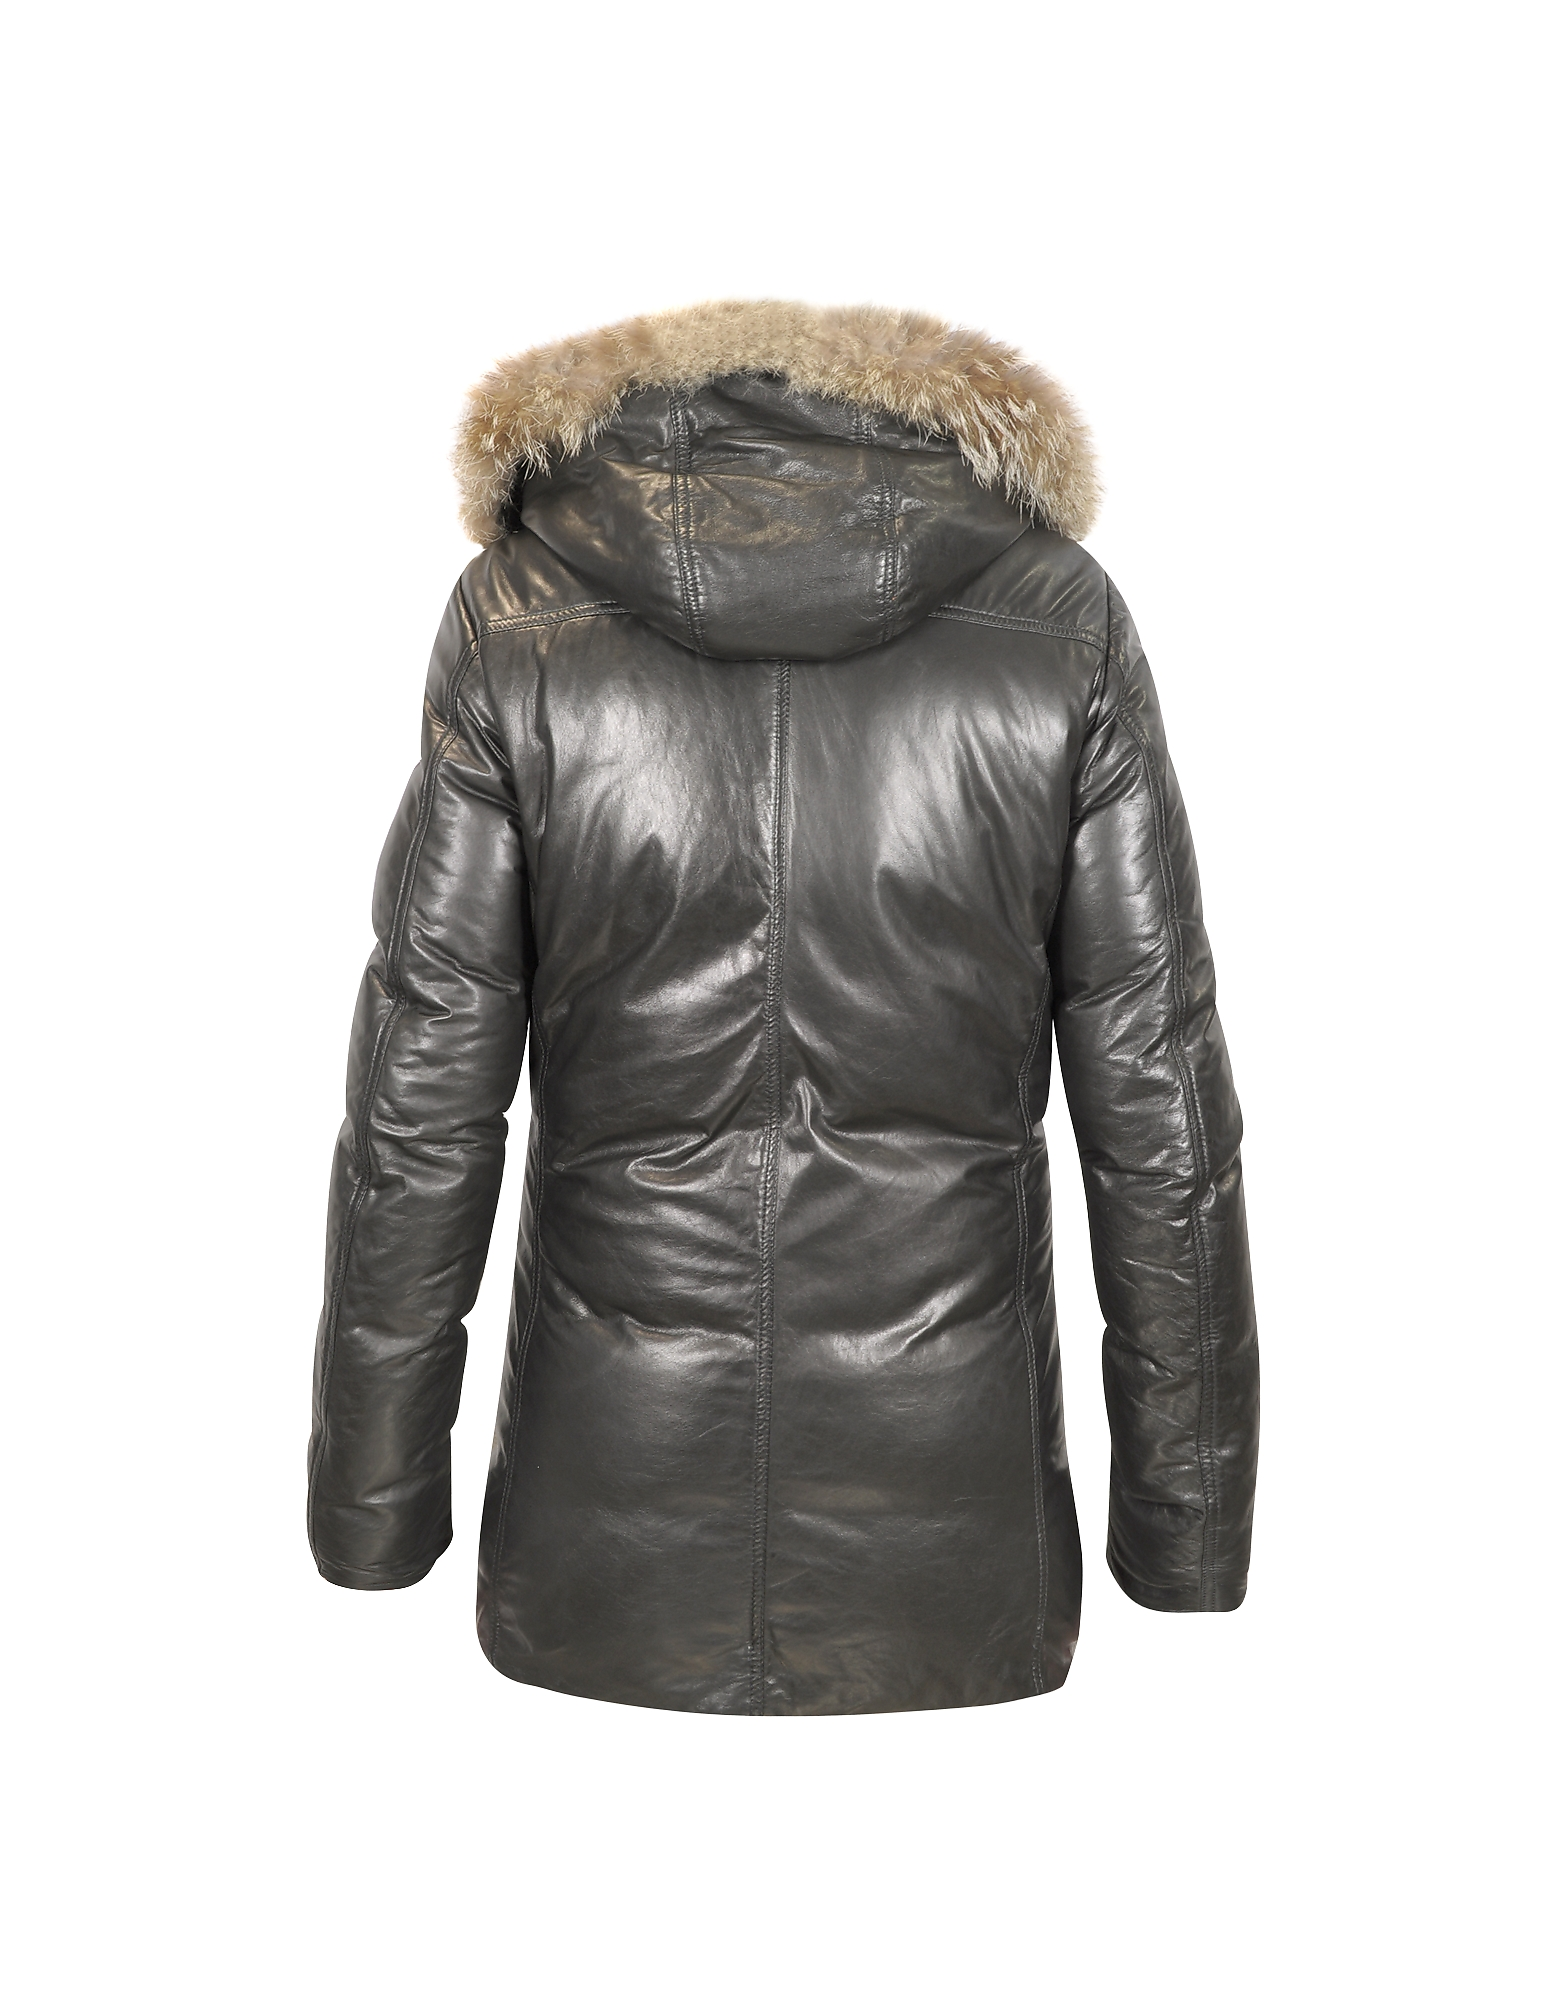 Men's Hooded Leather Car Coat от Forzieri.com INT